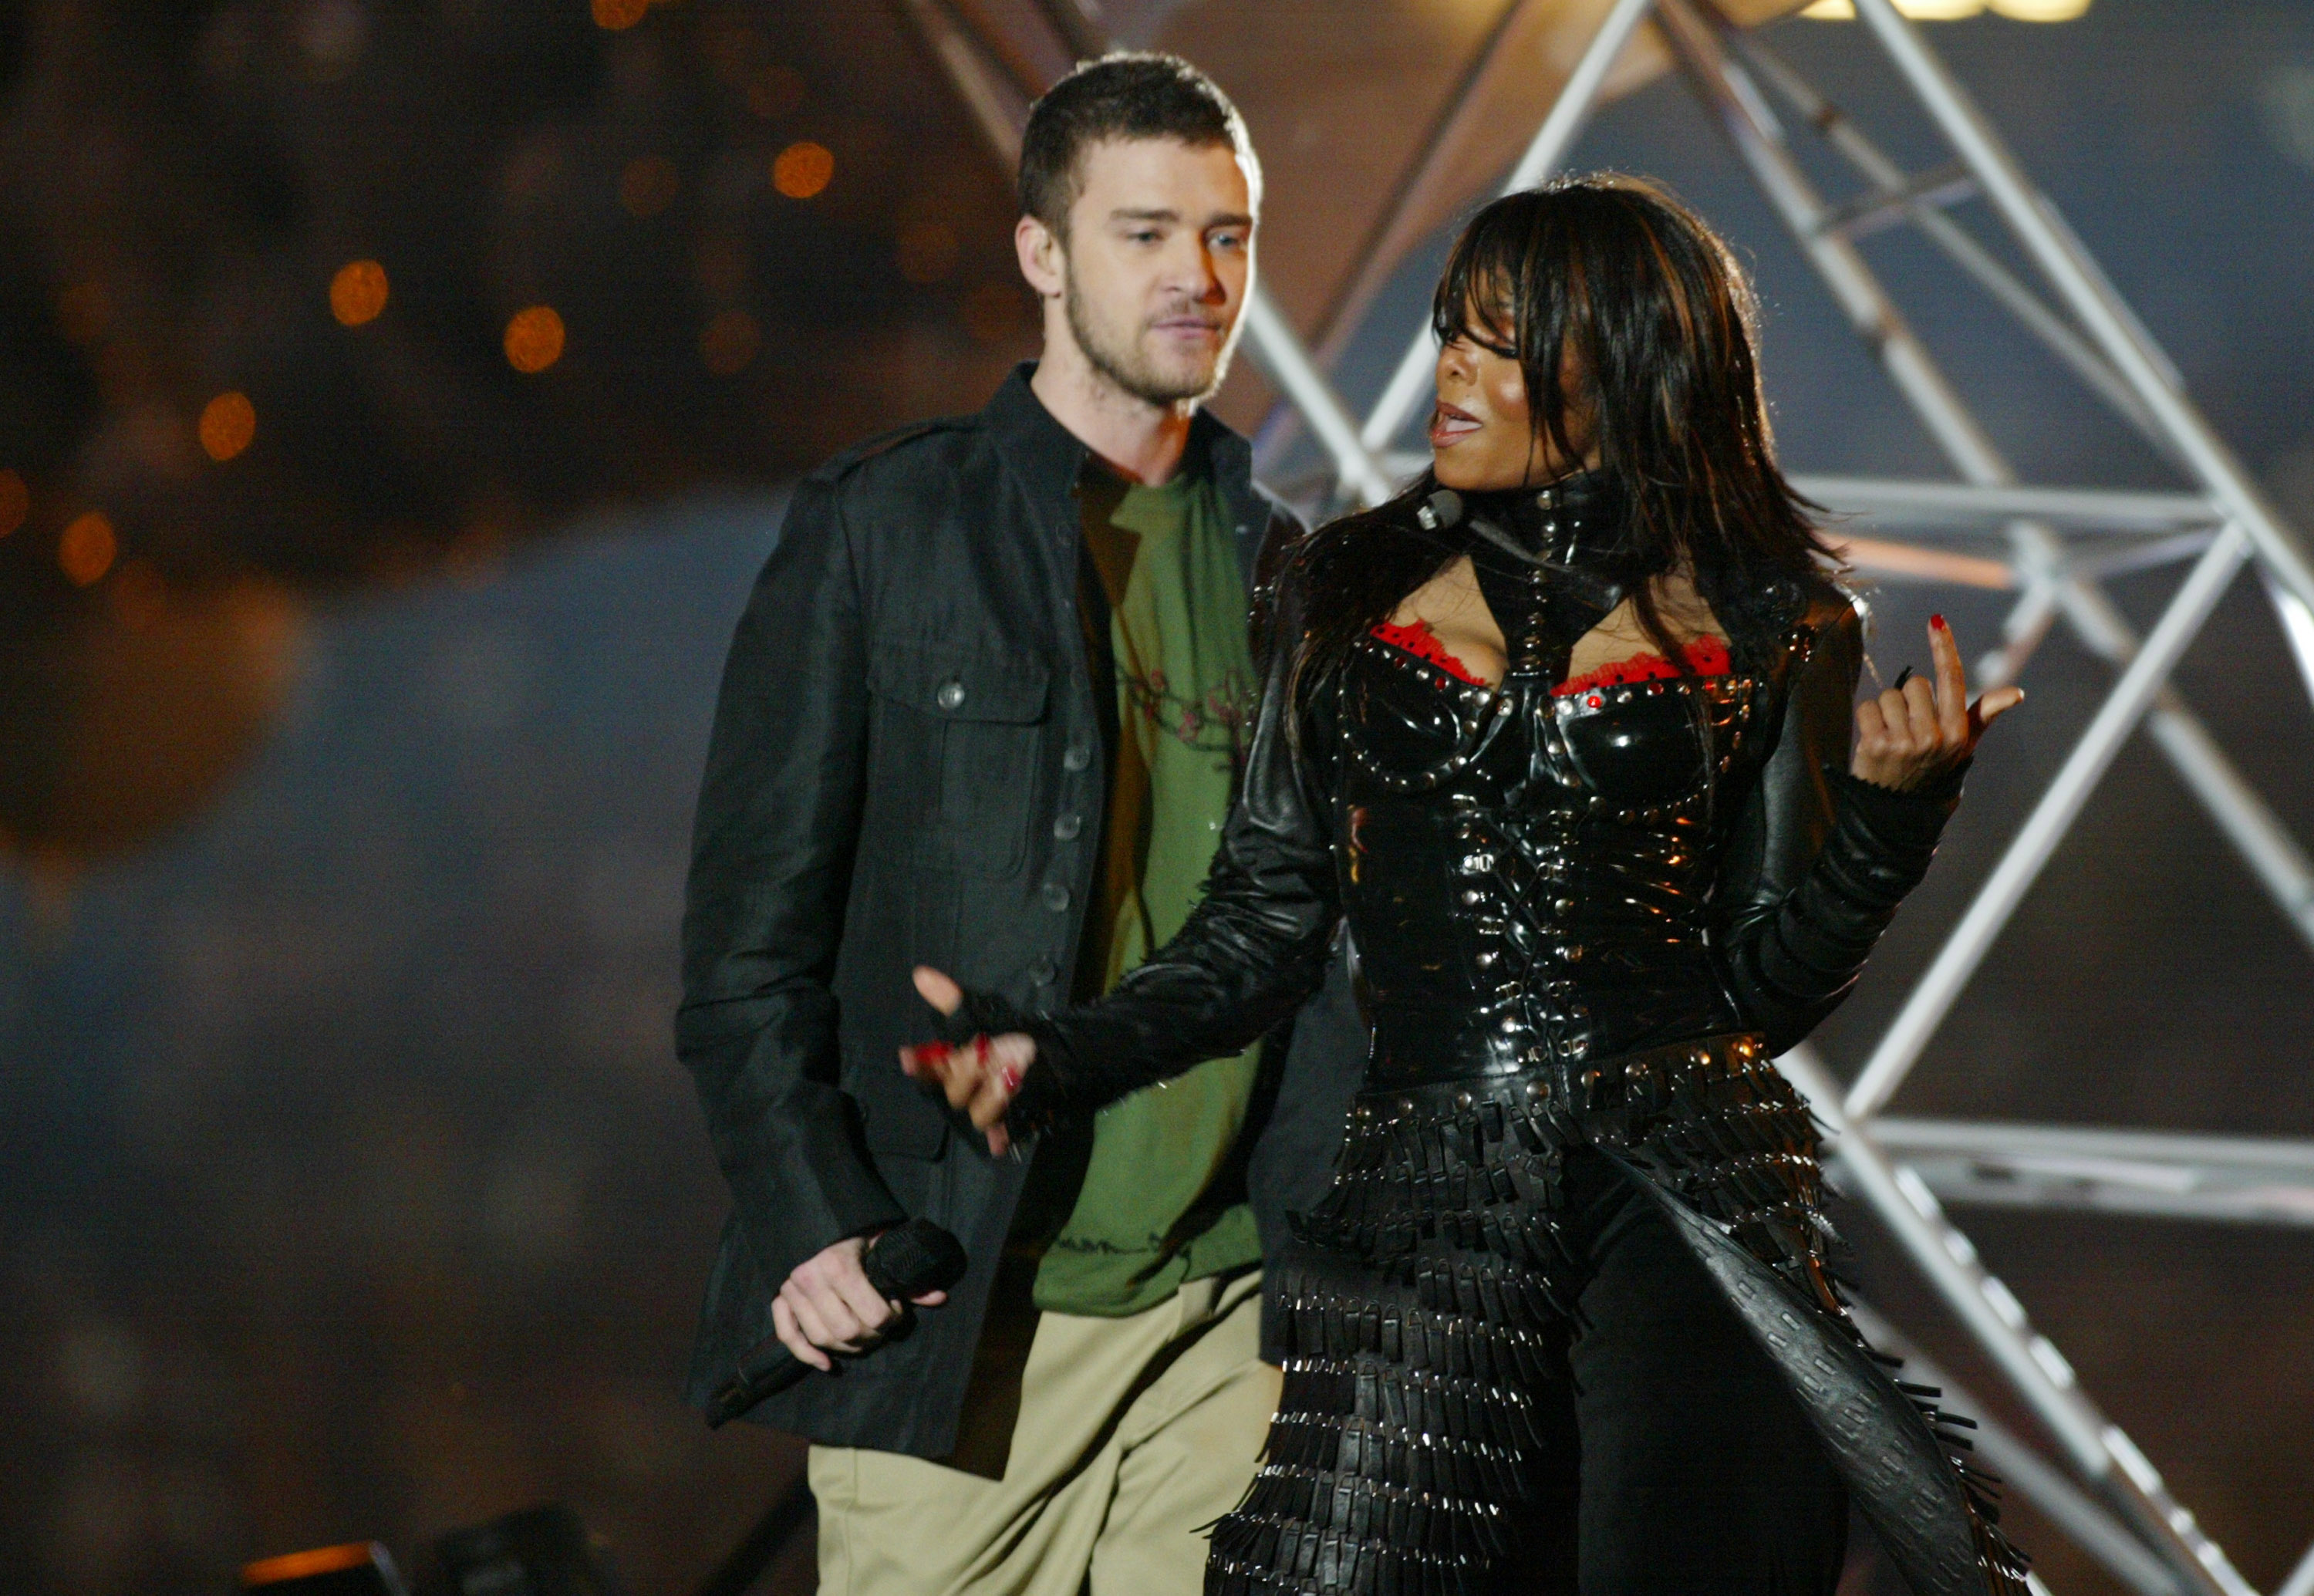 Justin Timberlake and Janet Jackson perform during the half - time show at Super Bowl XXXVIII in 2004.